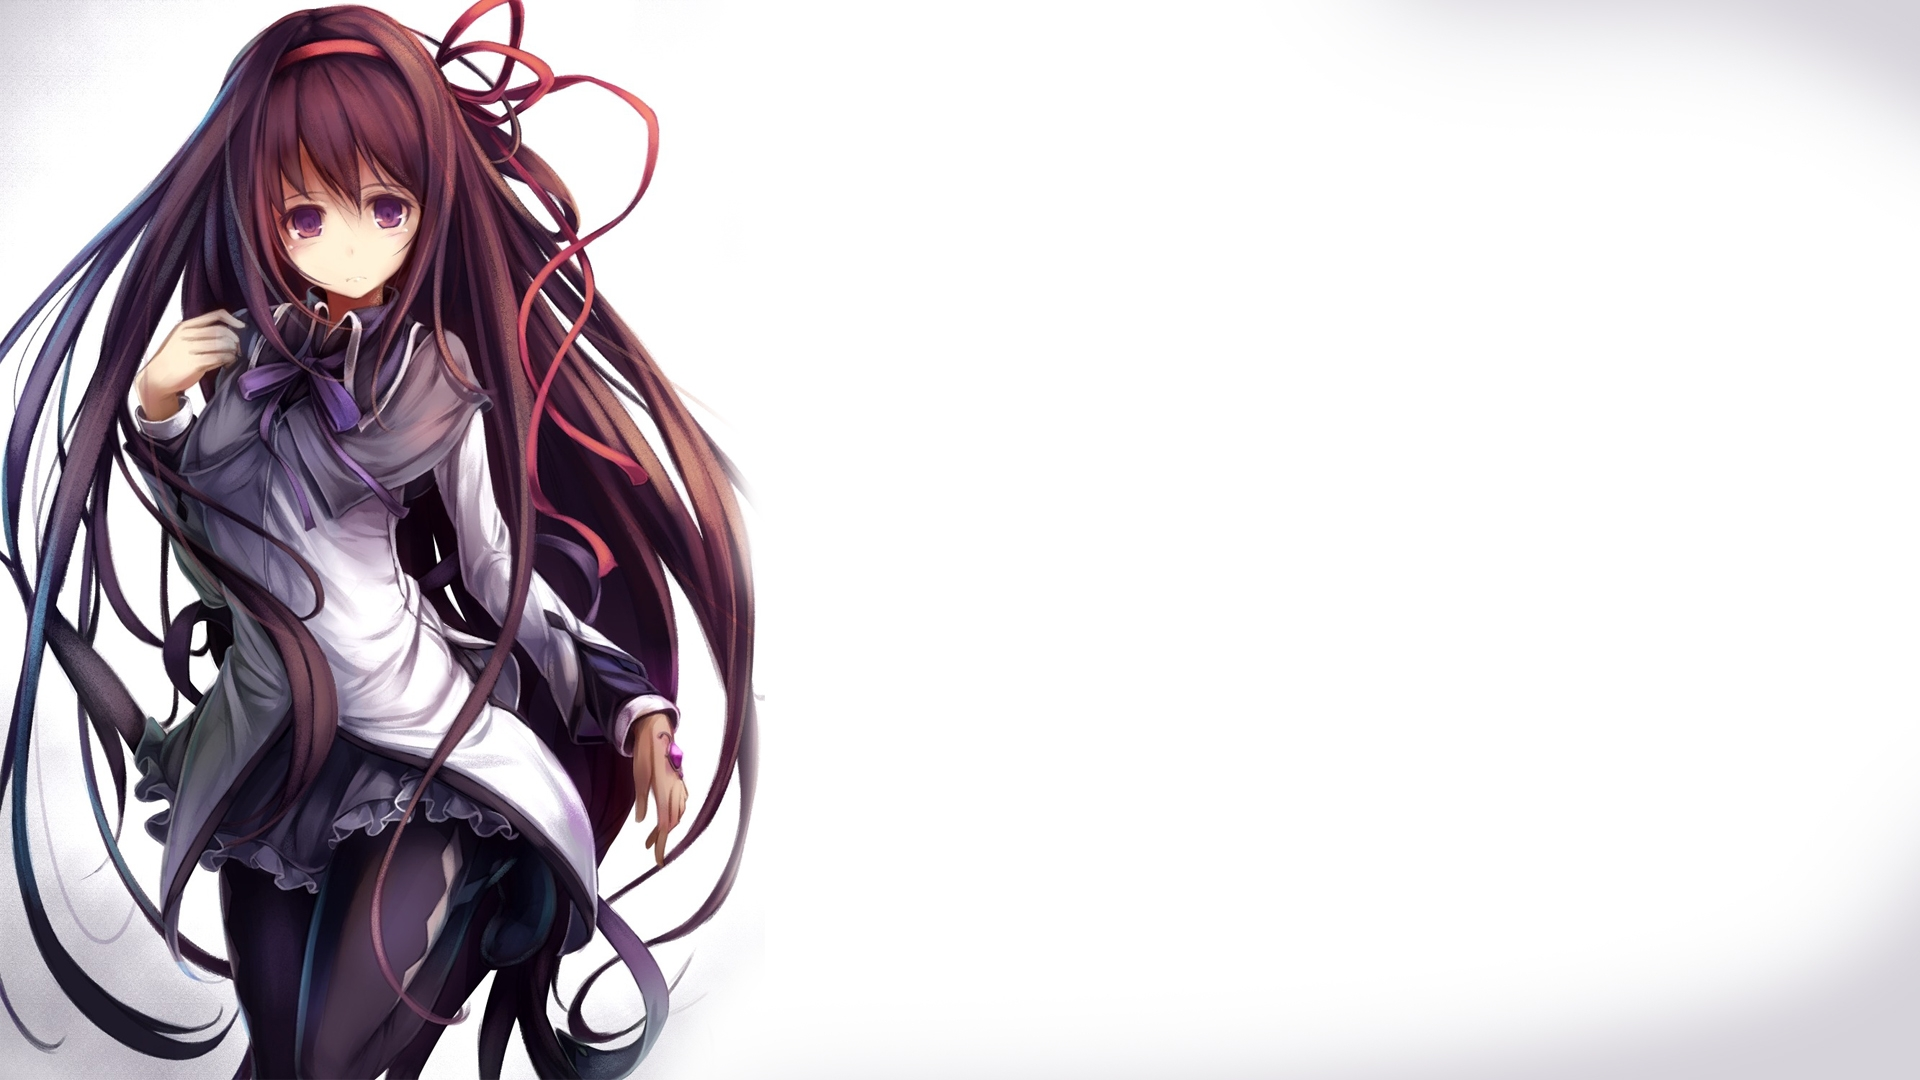 Anime Girl HD Wallpaper 1080p - WallpaperSafari